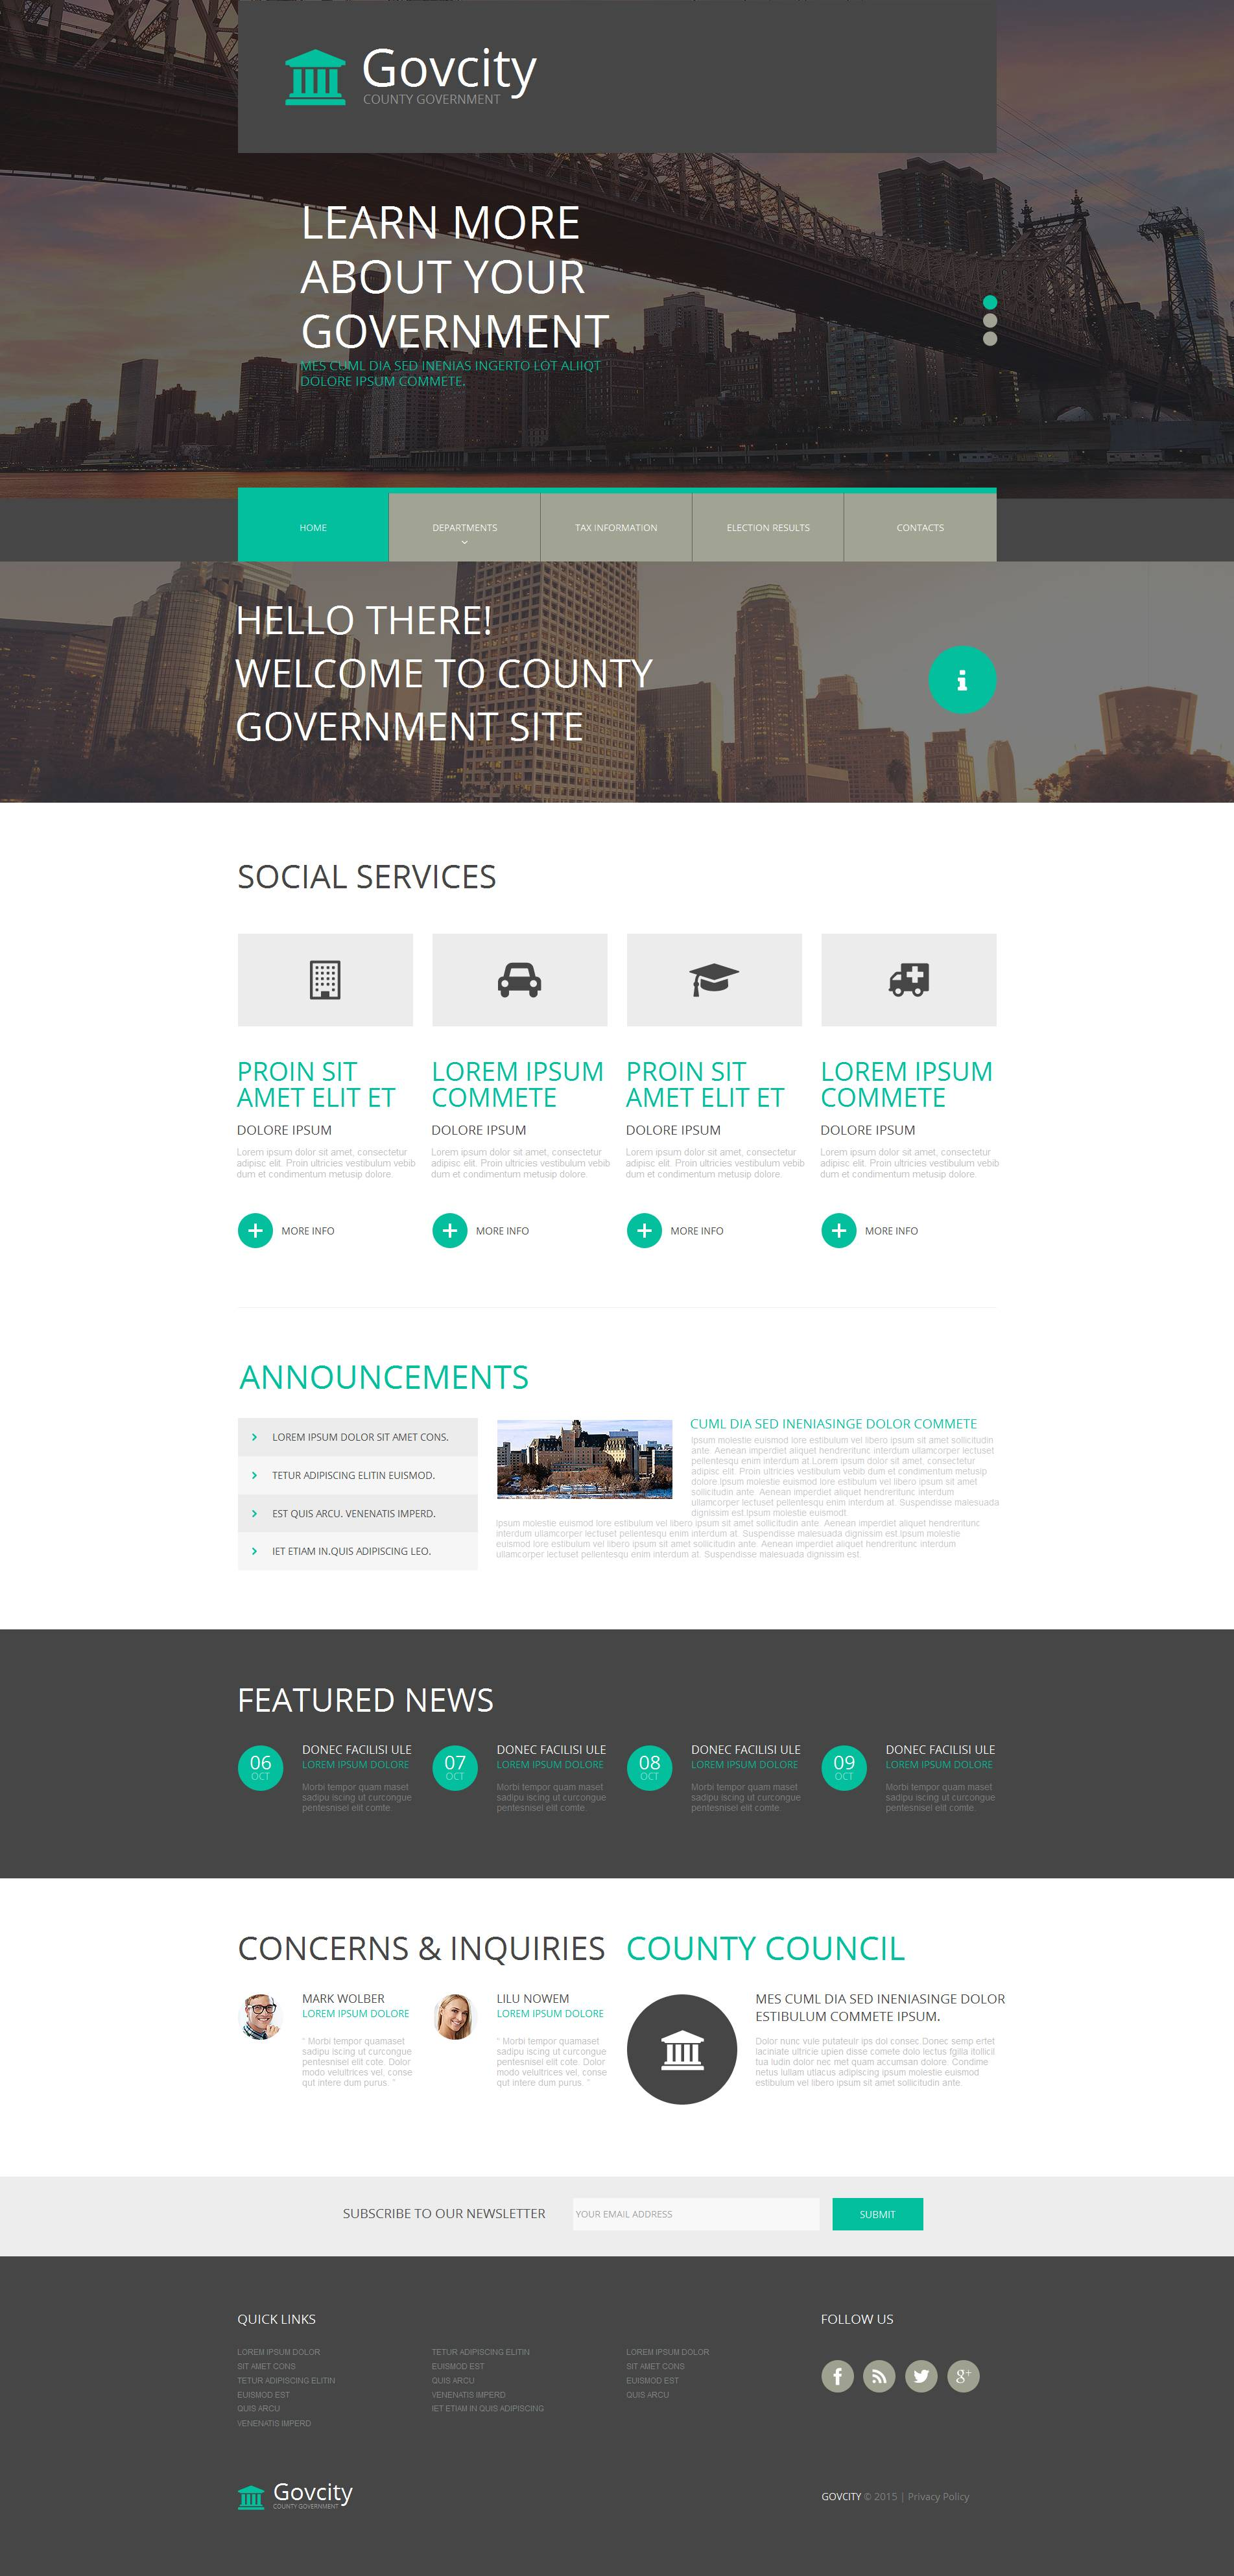 The Govcity County Government Moto CMS HTML Design 53610, one of the best Moto CMS HTML templates of its kind (politics), also known as Govcity county government Moto CMS HTML template, departments Moto CMS HTML template, documents Moto CMS HTML template, information Moto CMS HTML template, election Moto CMS HTML template, public politics Moto CMS HTML template, social Moto CMS HTML template, services and related with Govcity county government, departments, documents, information, election, public politics, social, services, etc.